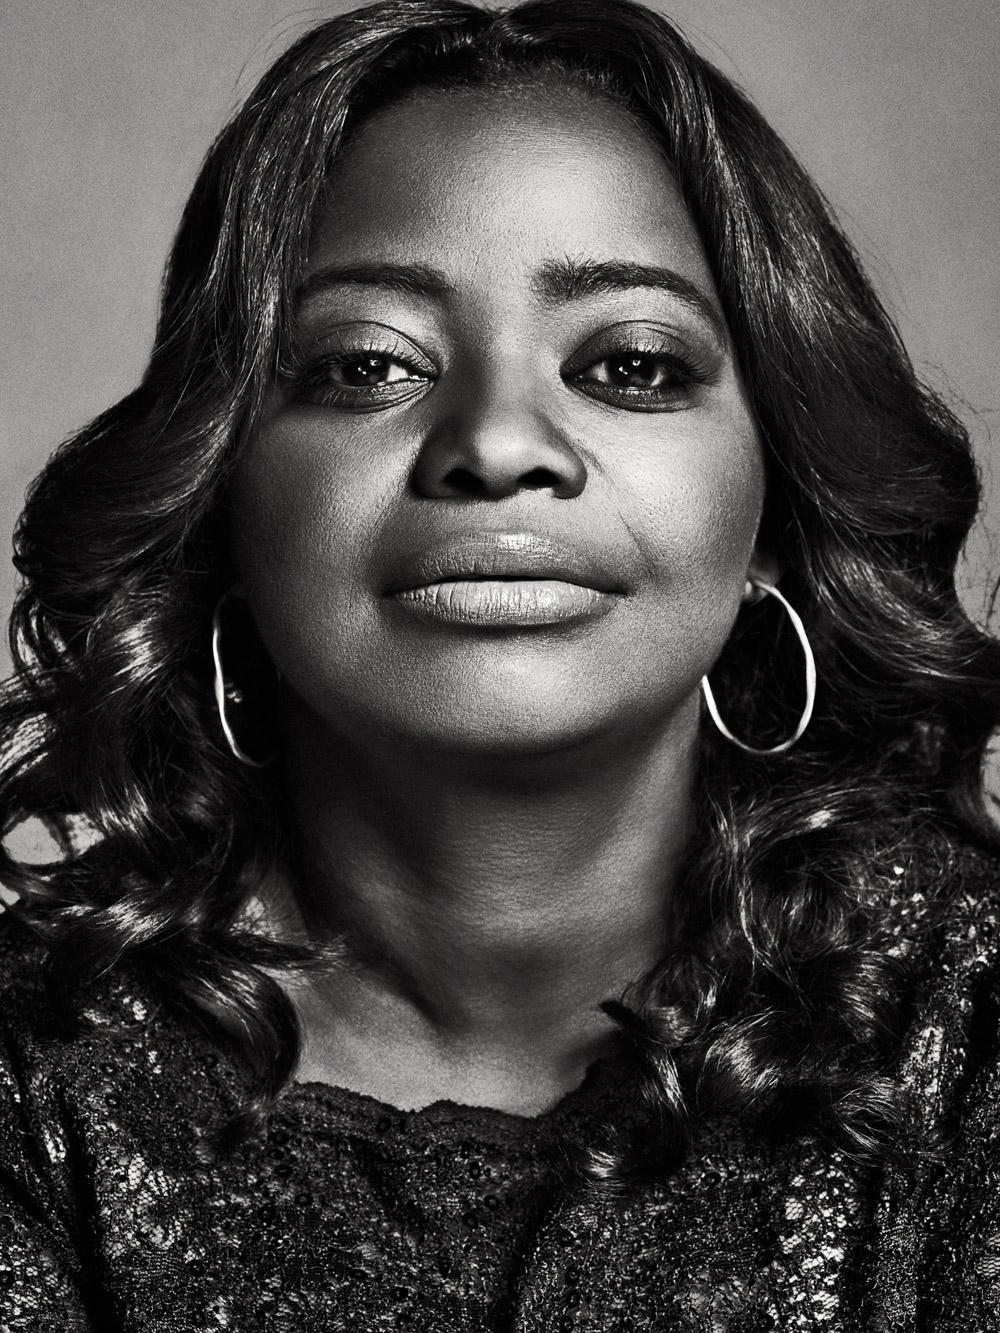 Octavia Spencer2011 Performances: The Help, Flypaper, Girls! Girls! Girls!Nominated: Best Supporting Actress for The Help